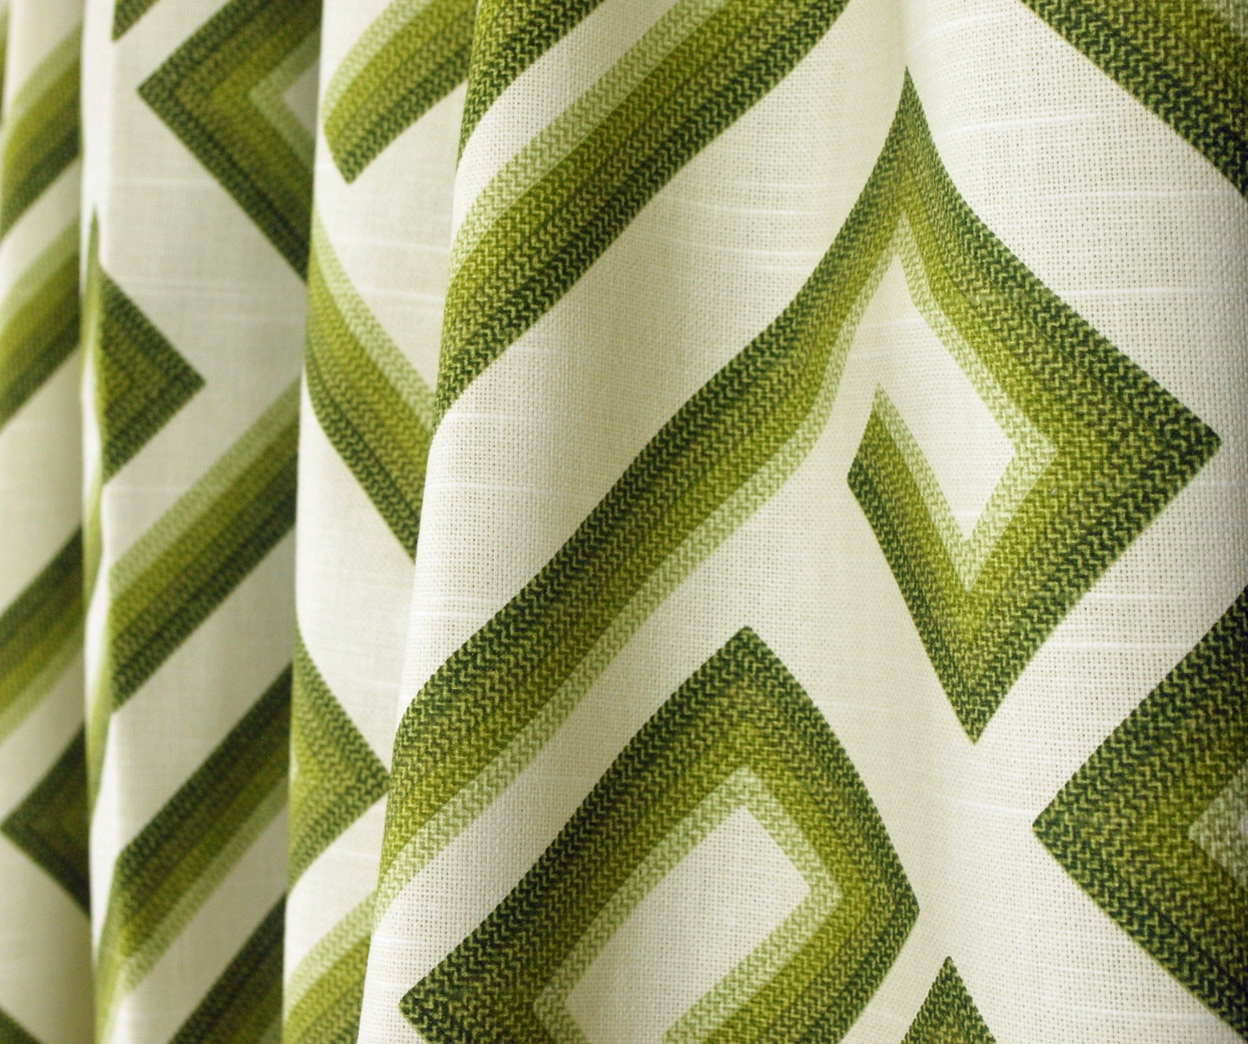 Olive Green Patterned Curtains | Home Design Ideas